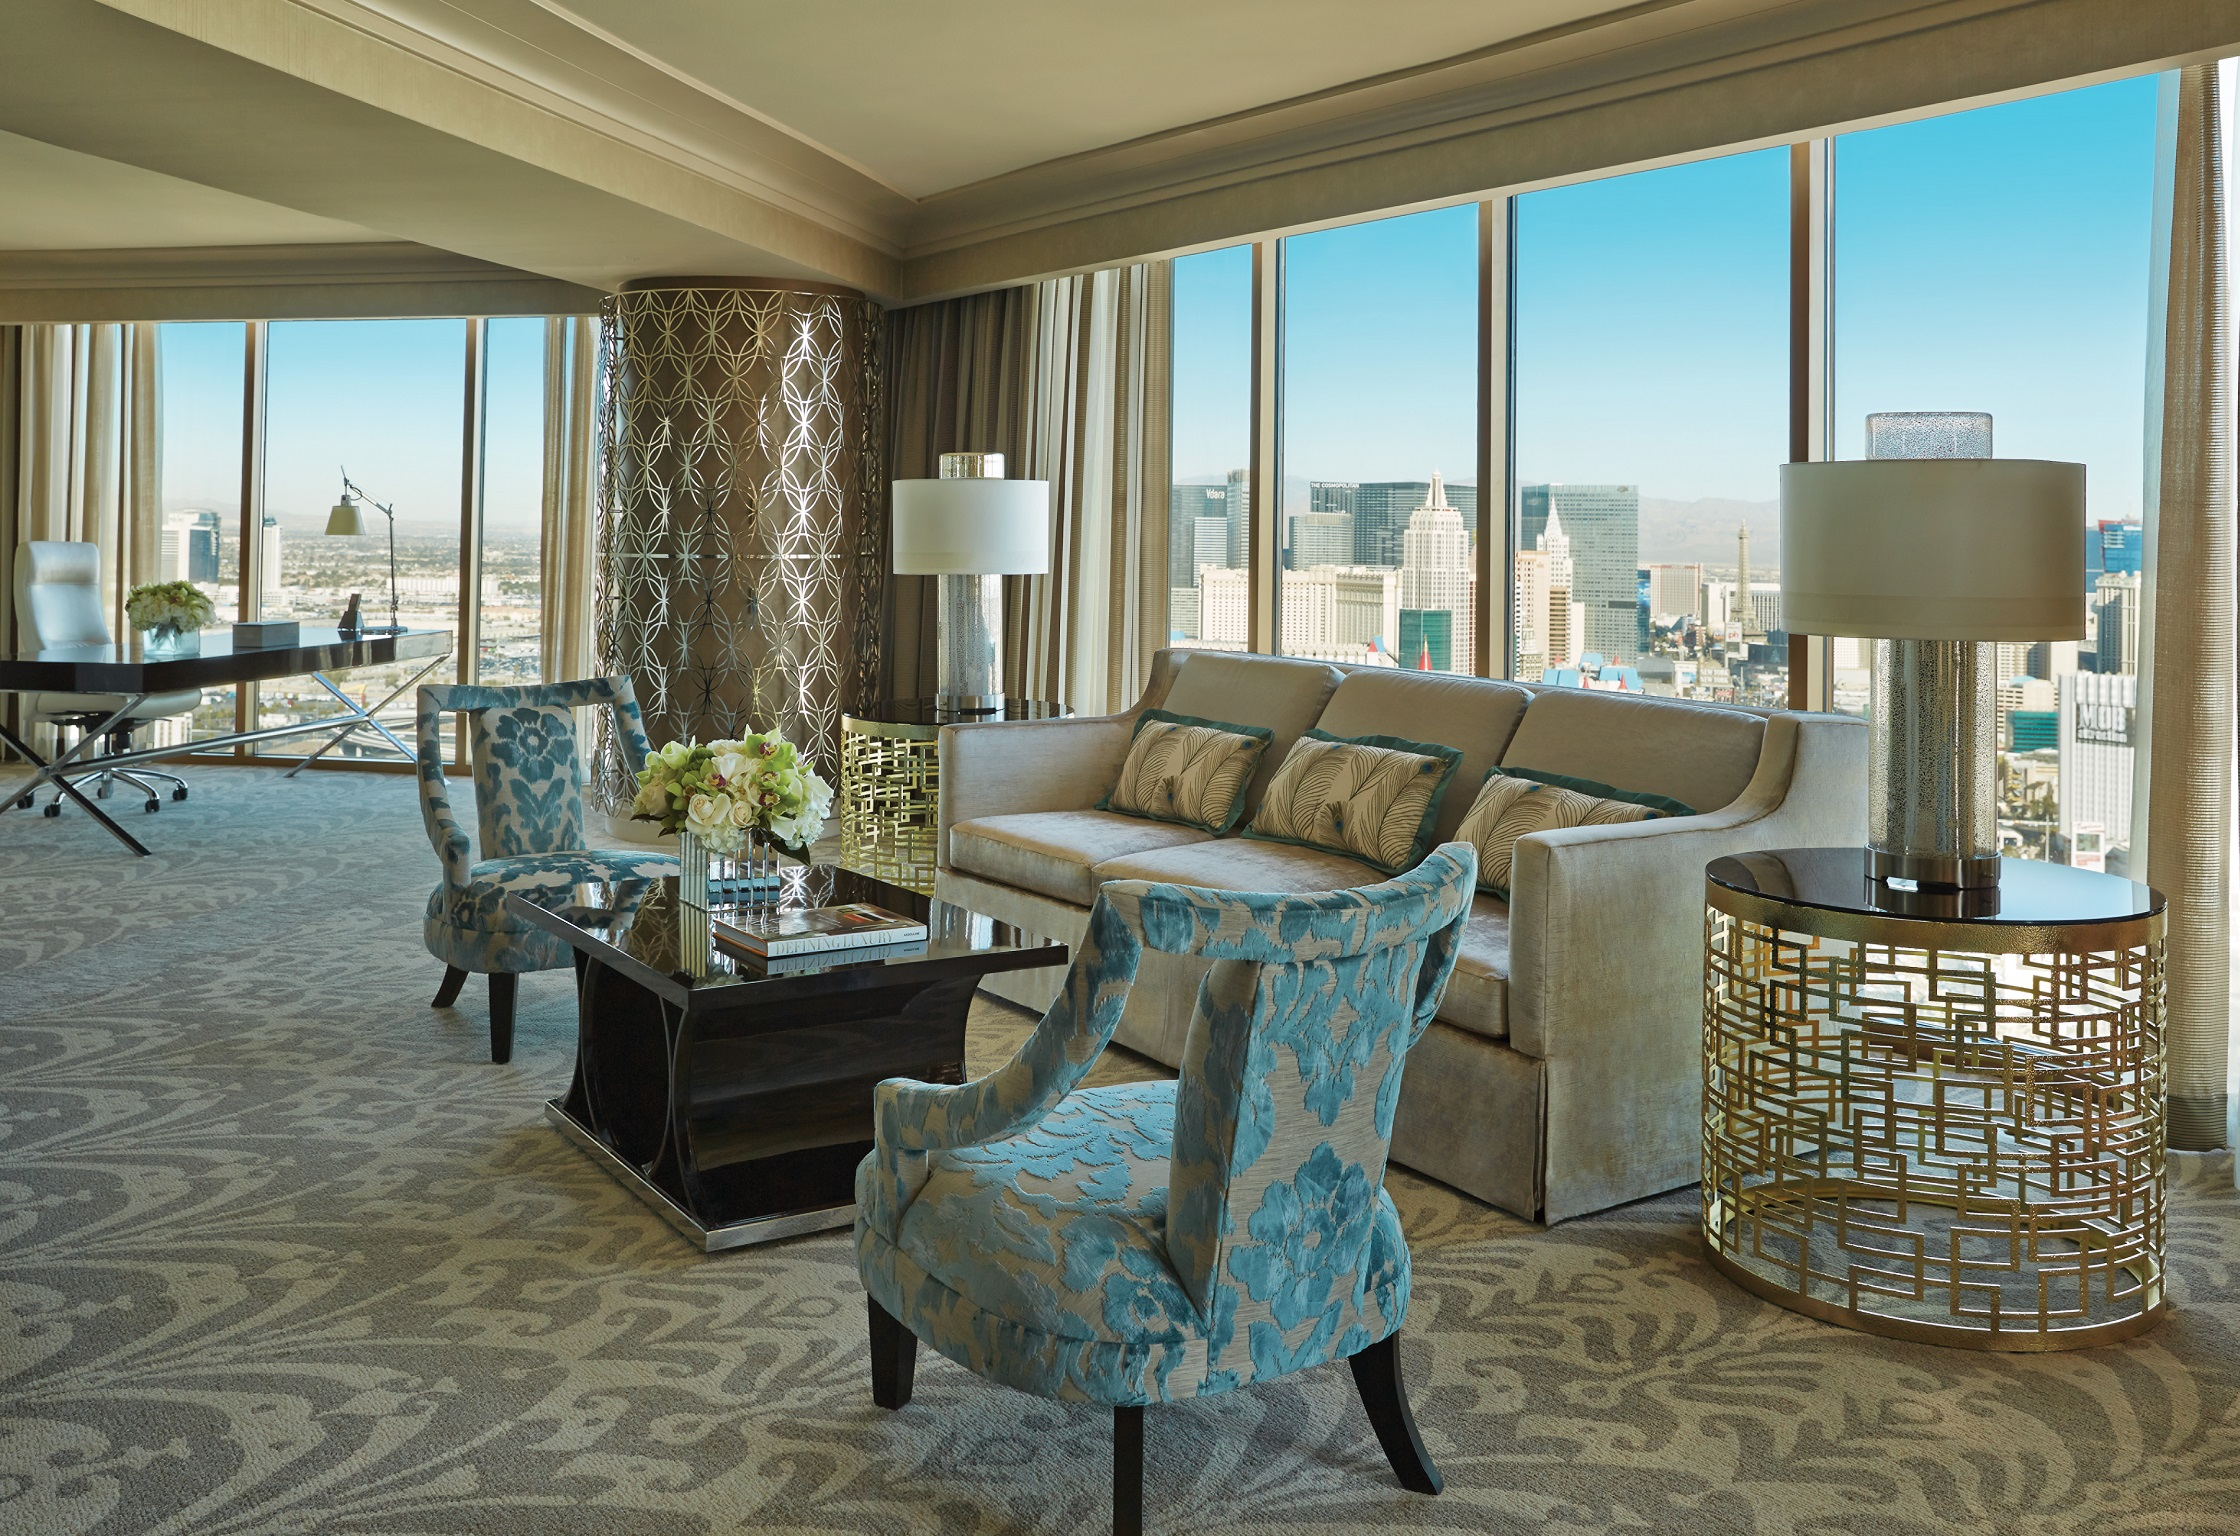 5 Over The Top Vegas Hotel Rooms With Incredible Views Orbitz